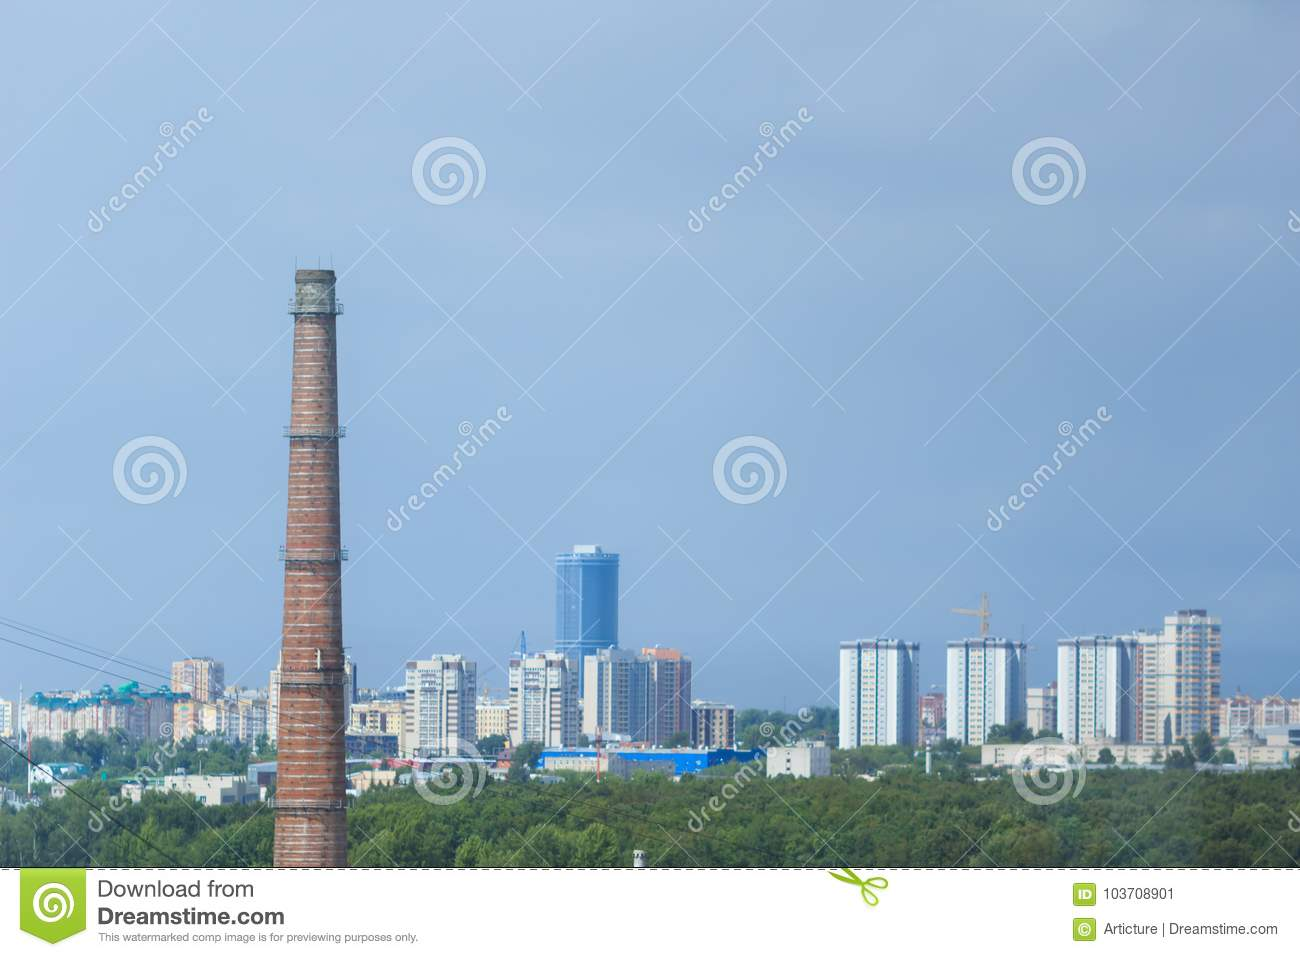 Aerial view of Kazan city. Modern buildings, greenery and old industrial pipe.